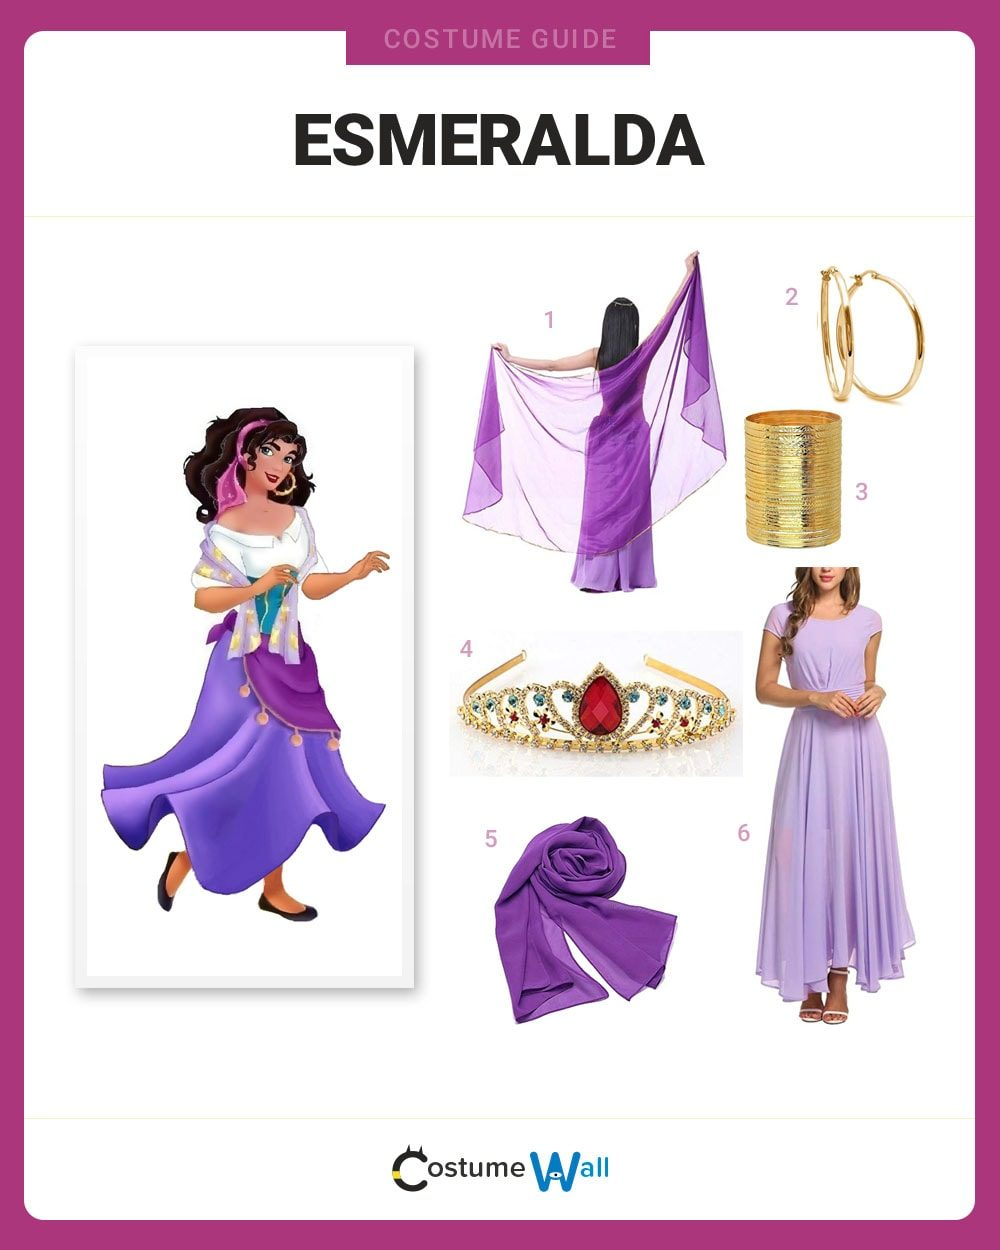 Esmeralda Costume Guide